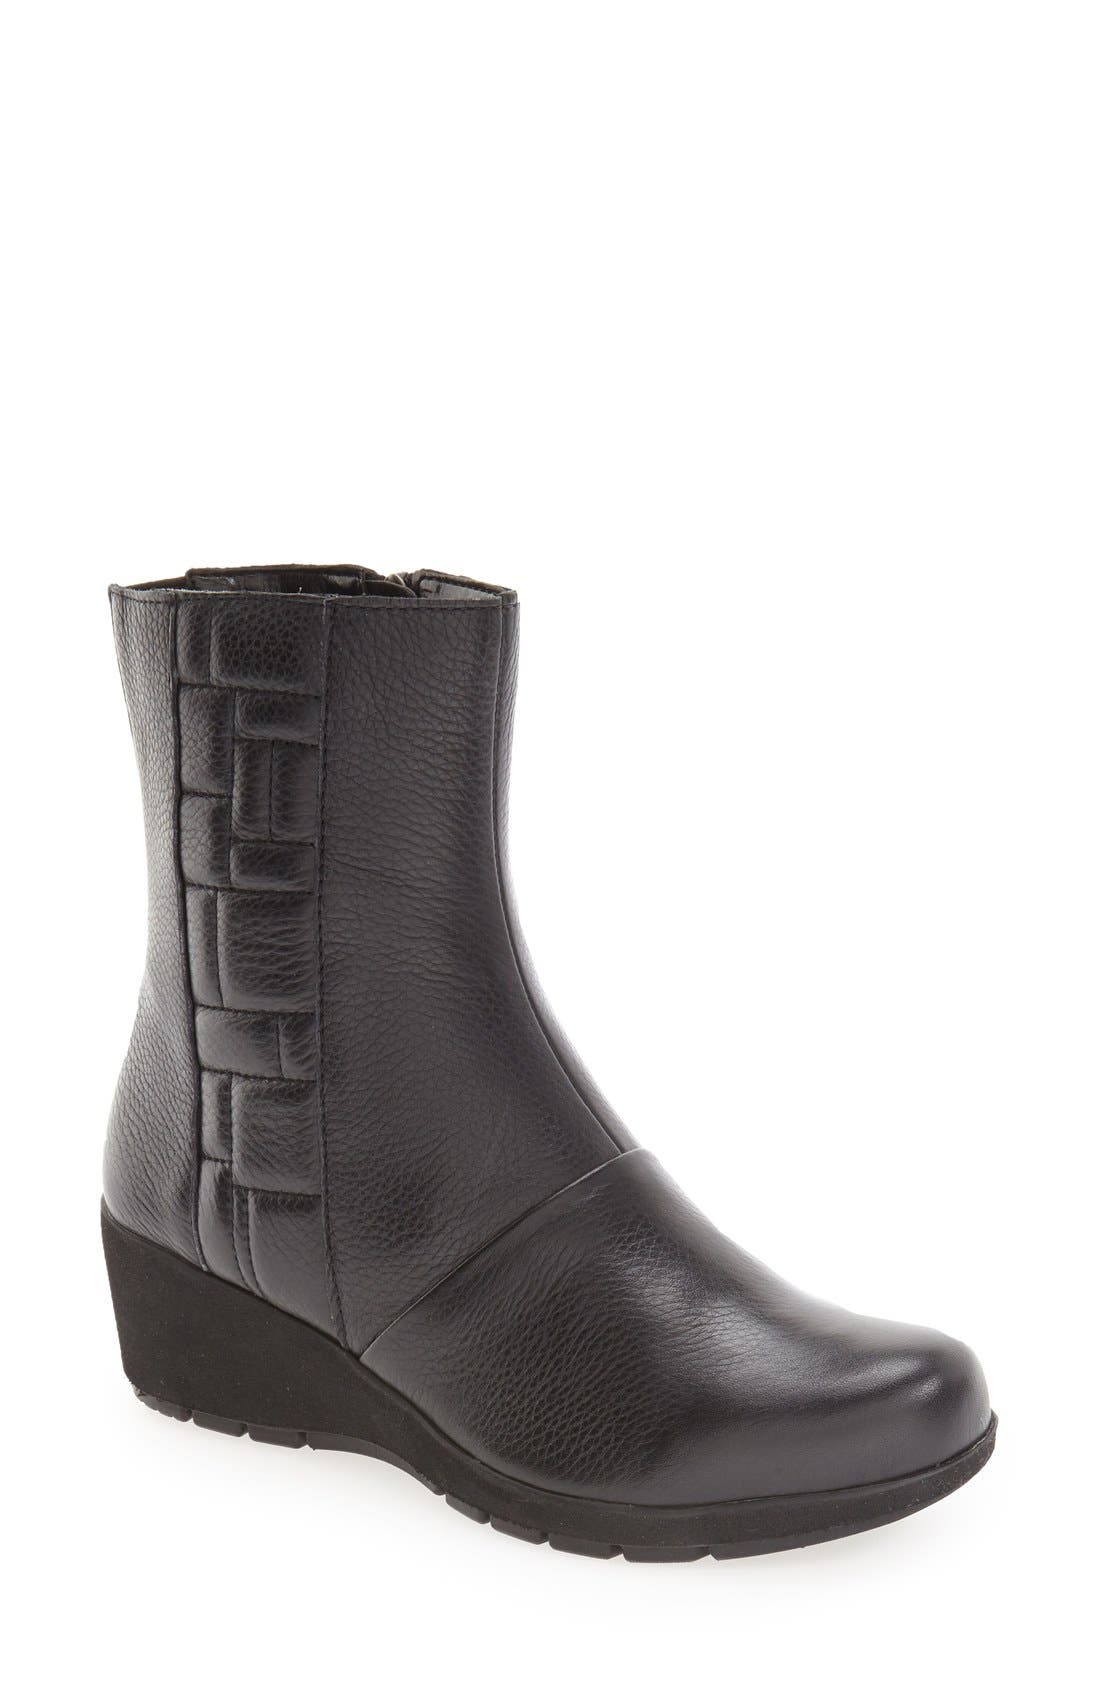 'Jane' Wedge Bootie,                         Main,                         color, Black Leather